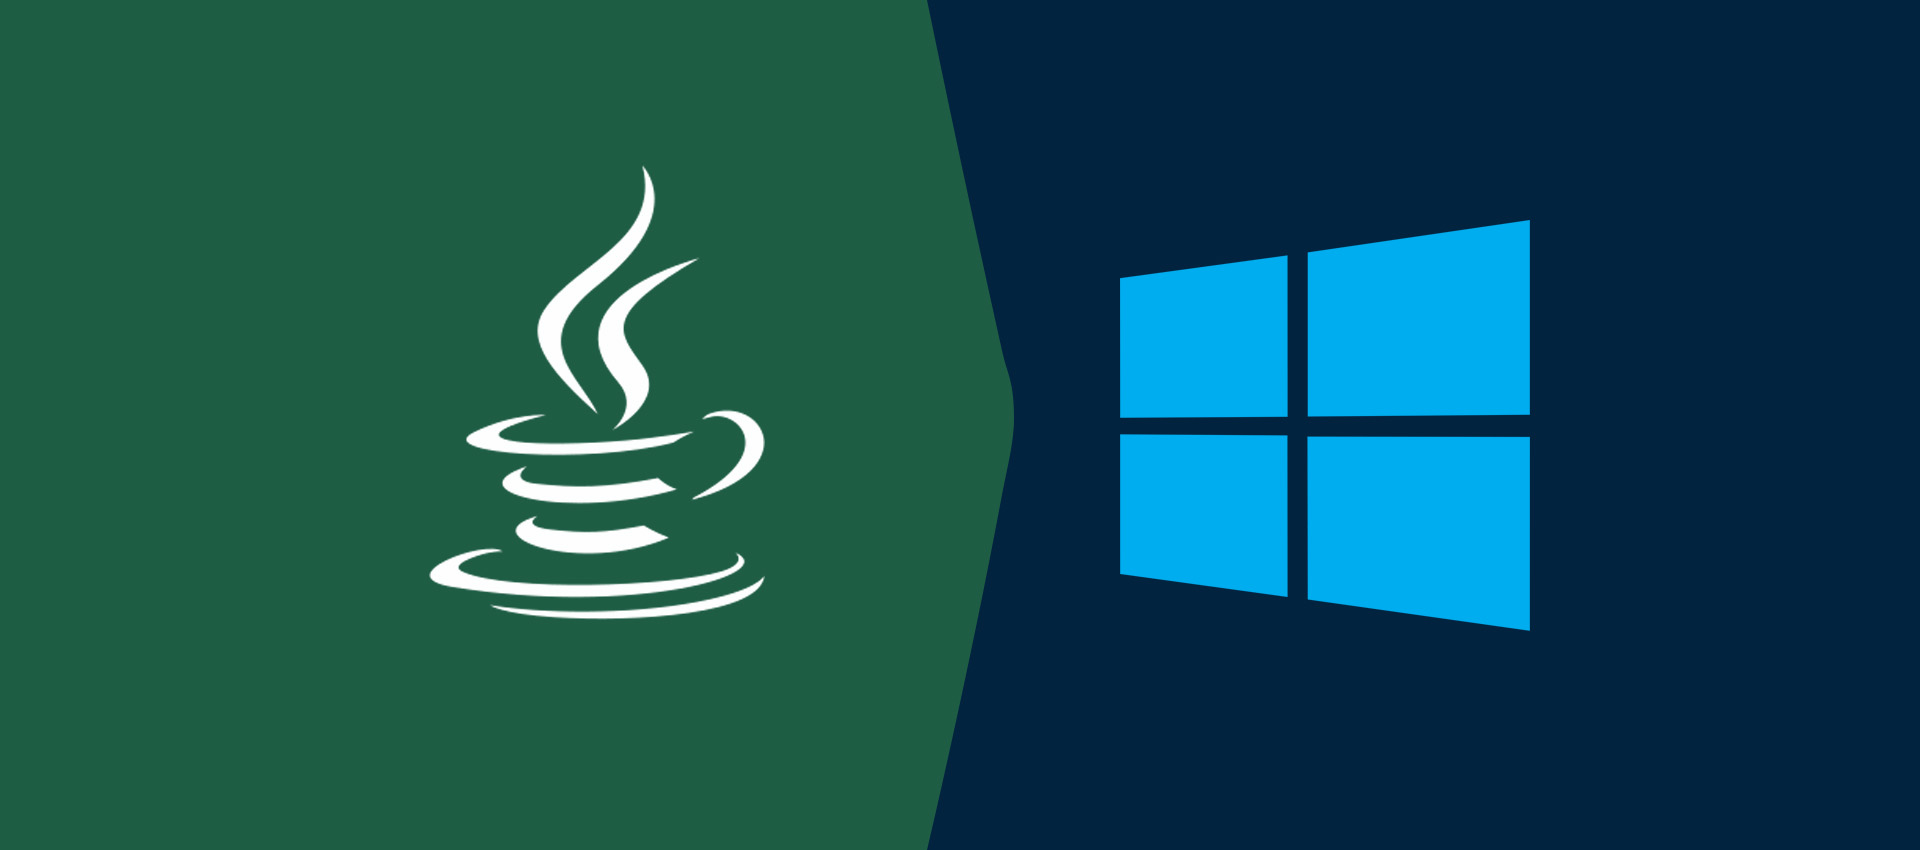 How To Install Java 15 On Windows